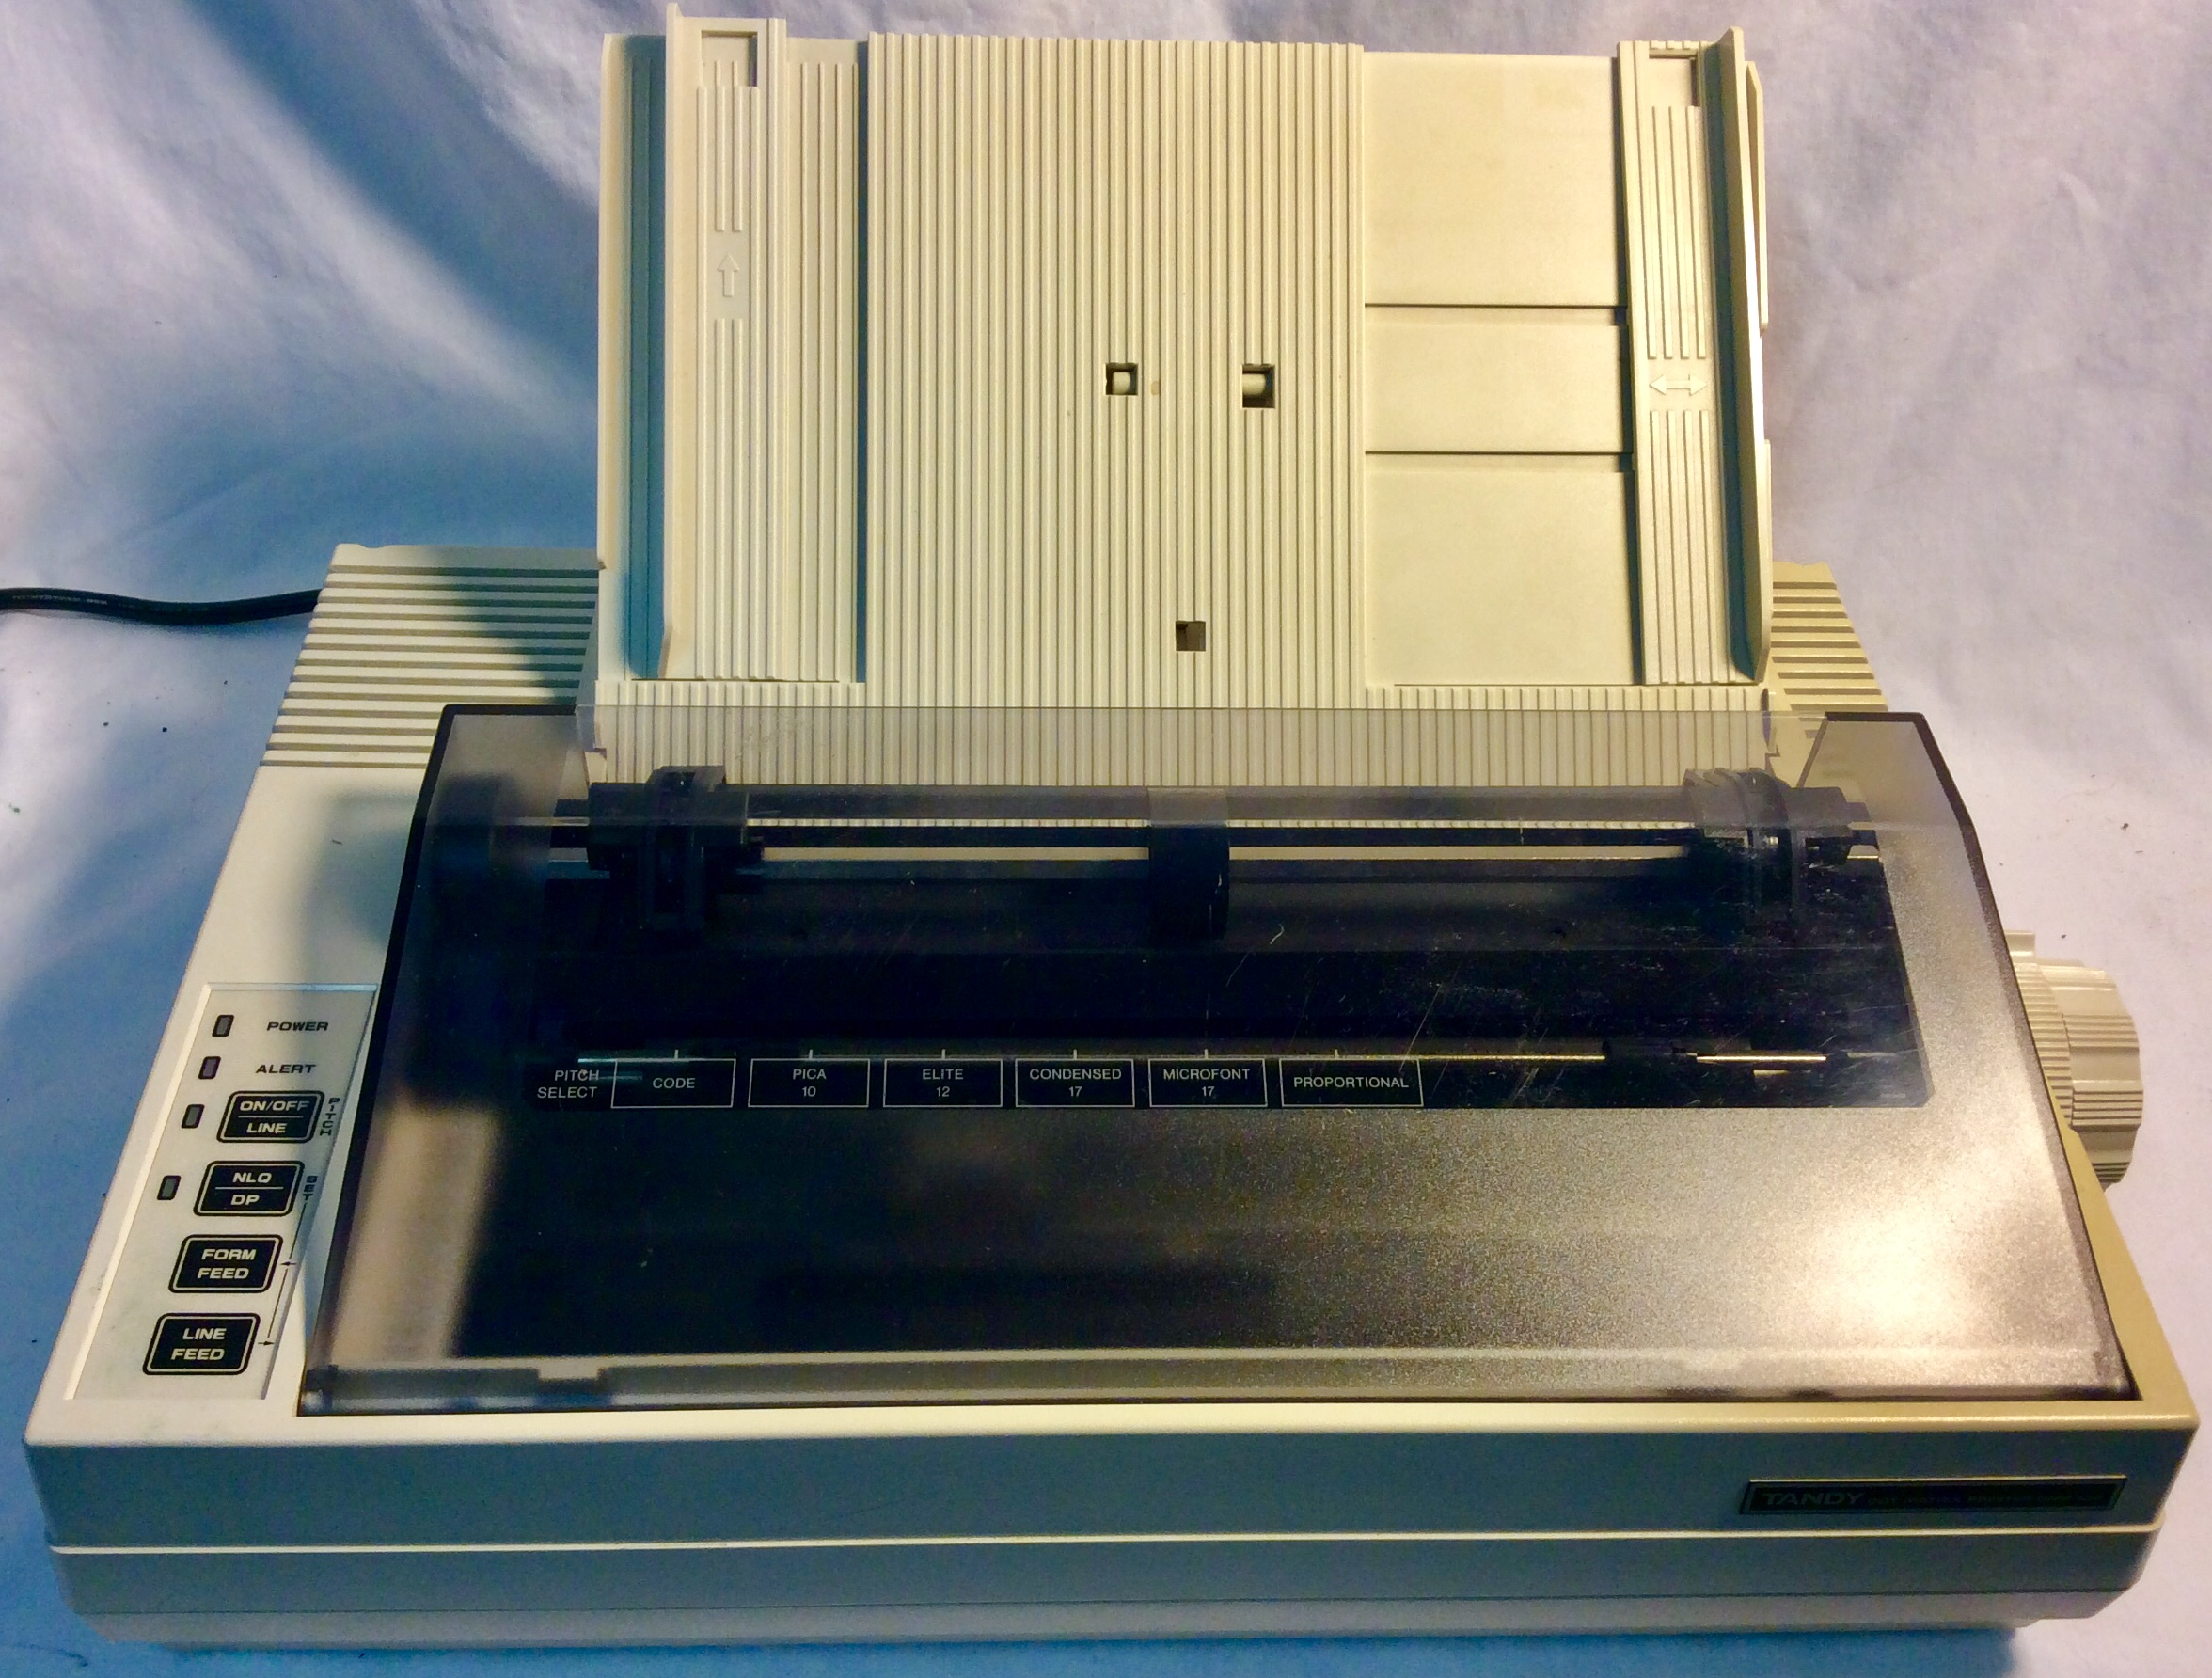 Antique printer Tandy dot matrix printer